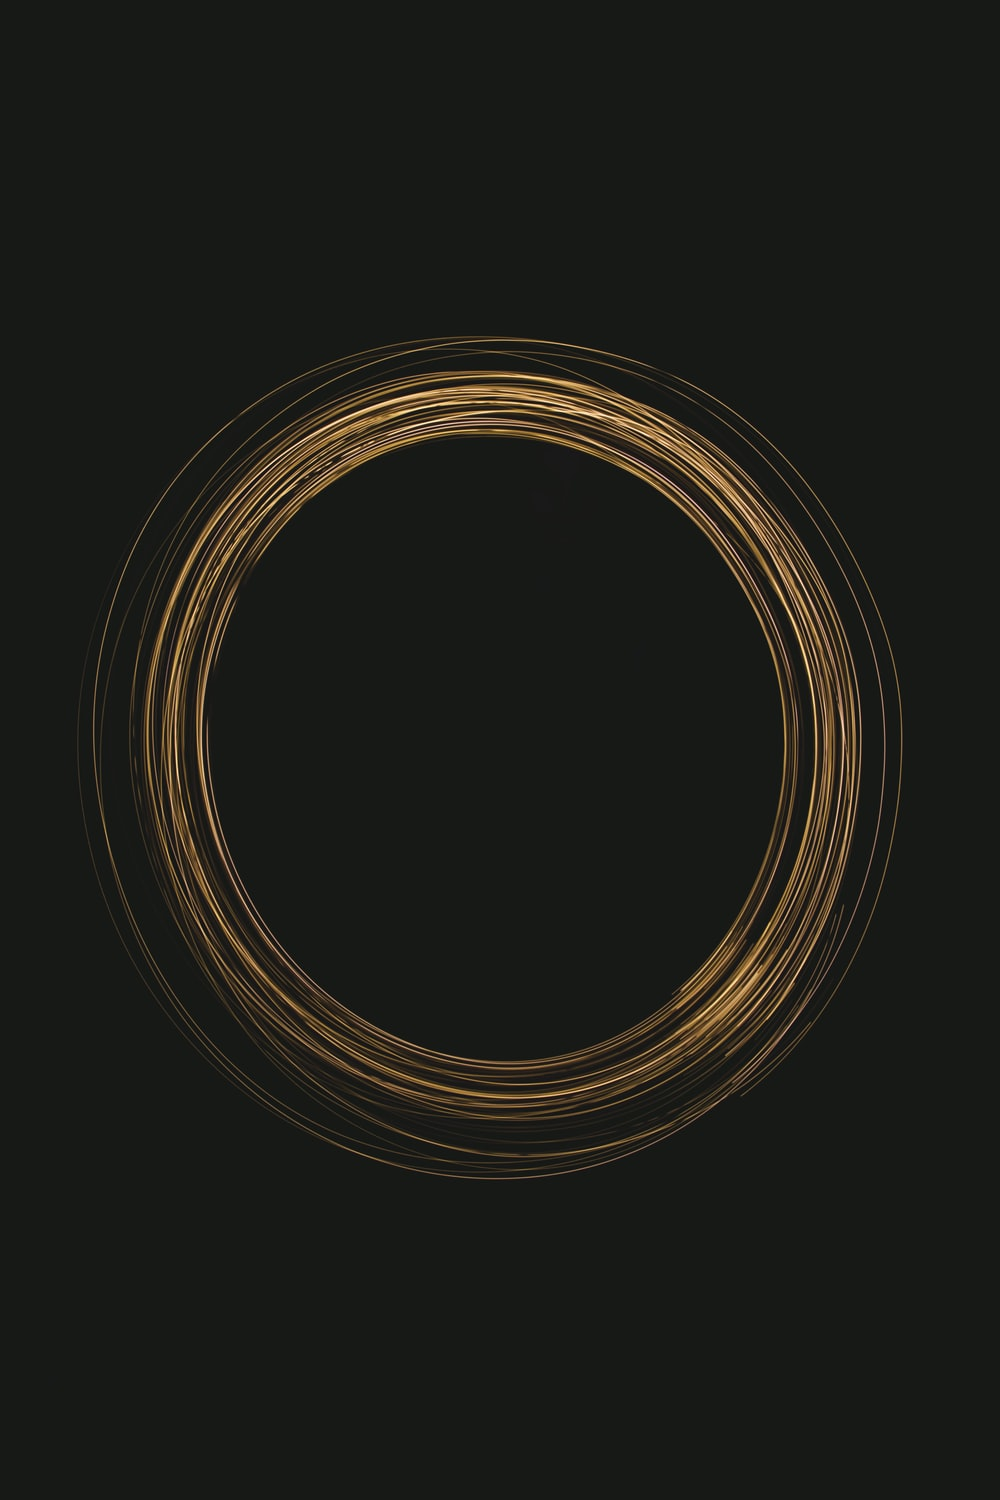 brown and black round illustration